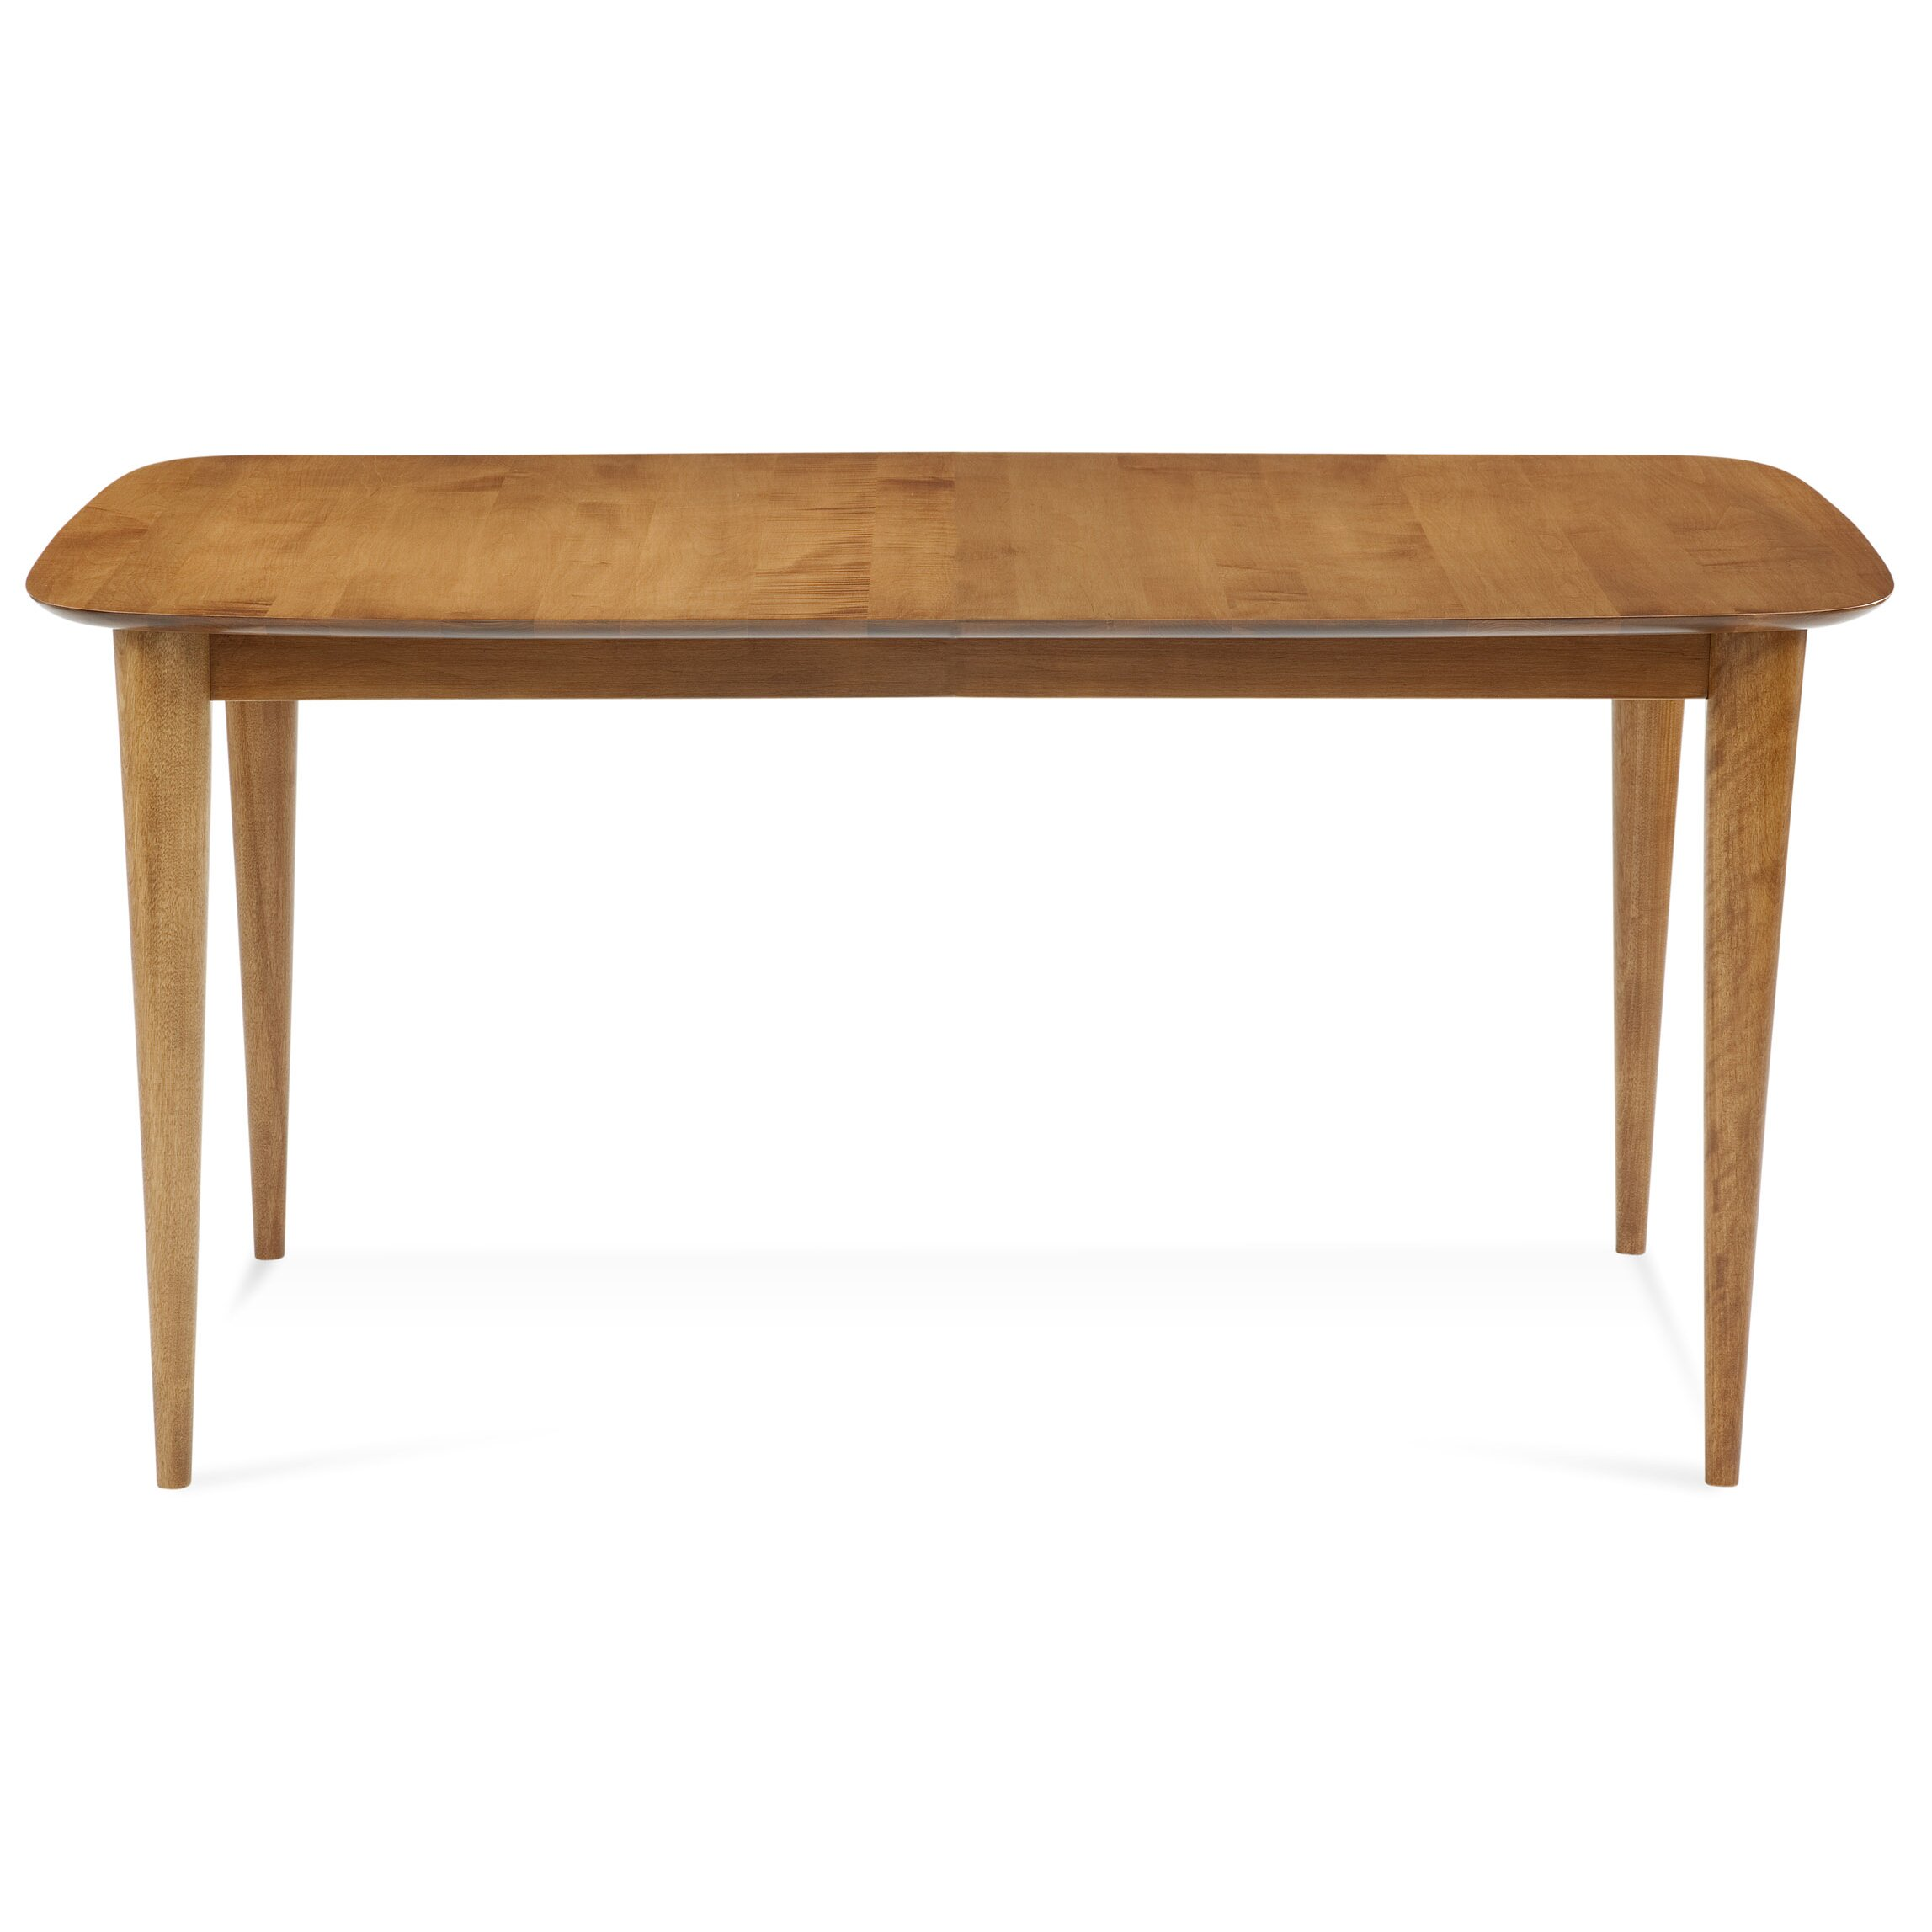 Saloom Furniture Cona Dining Table & Reviews